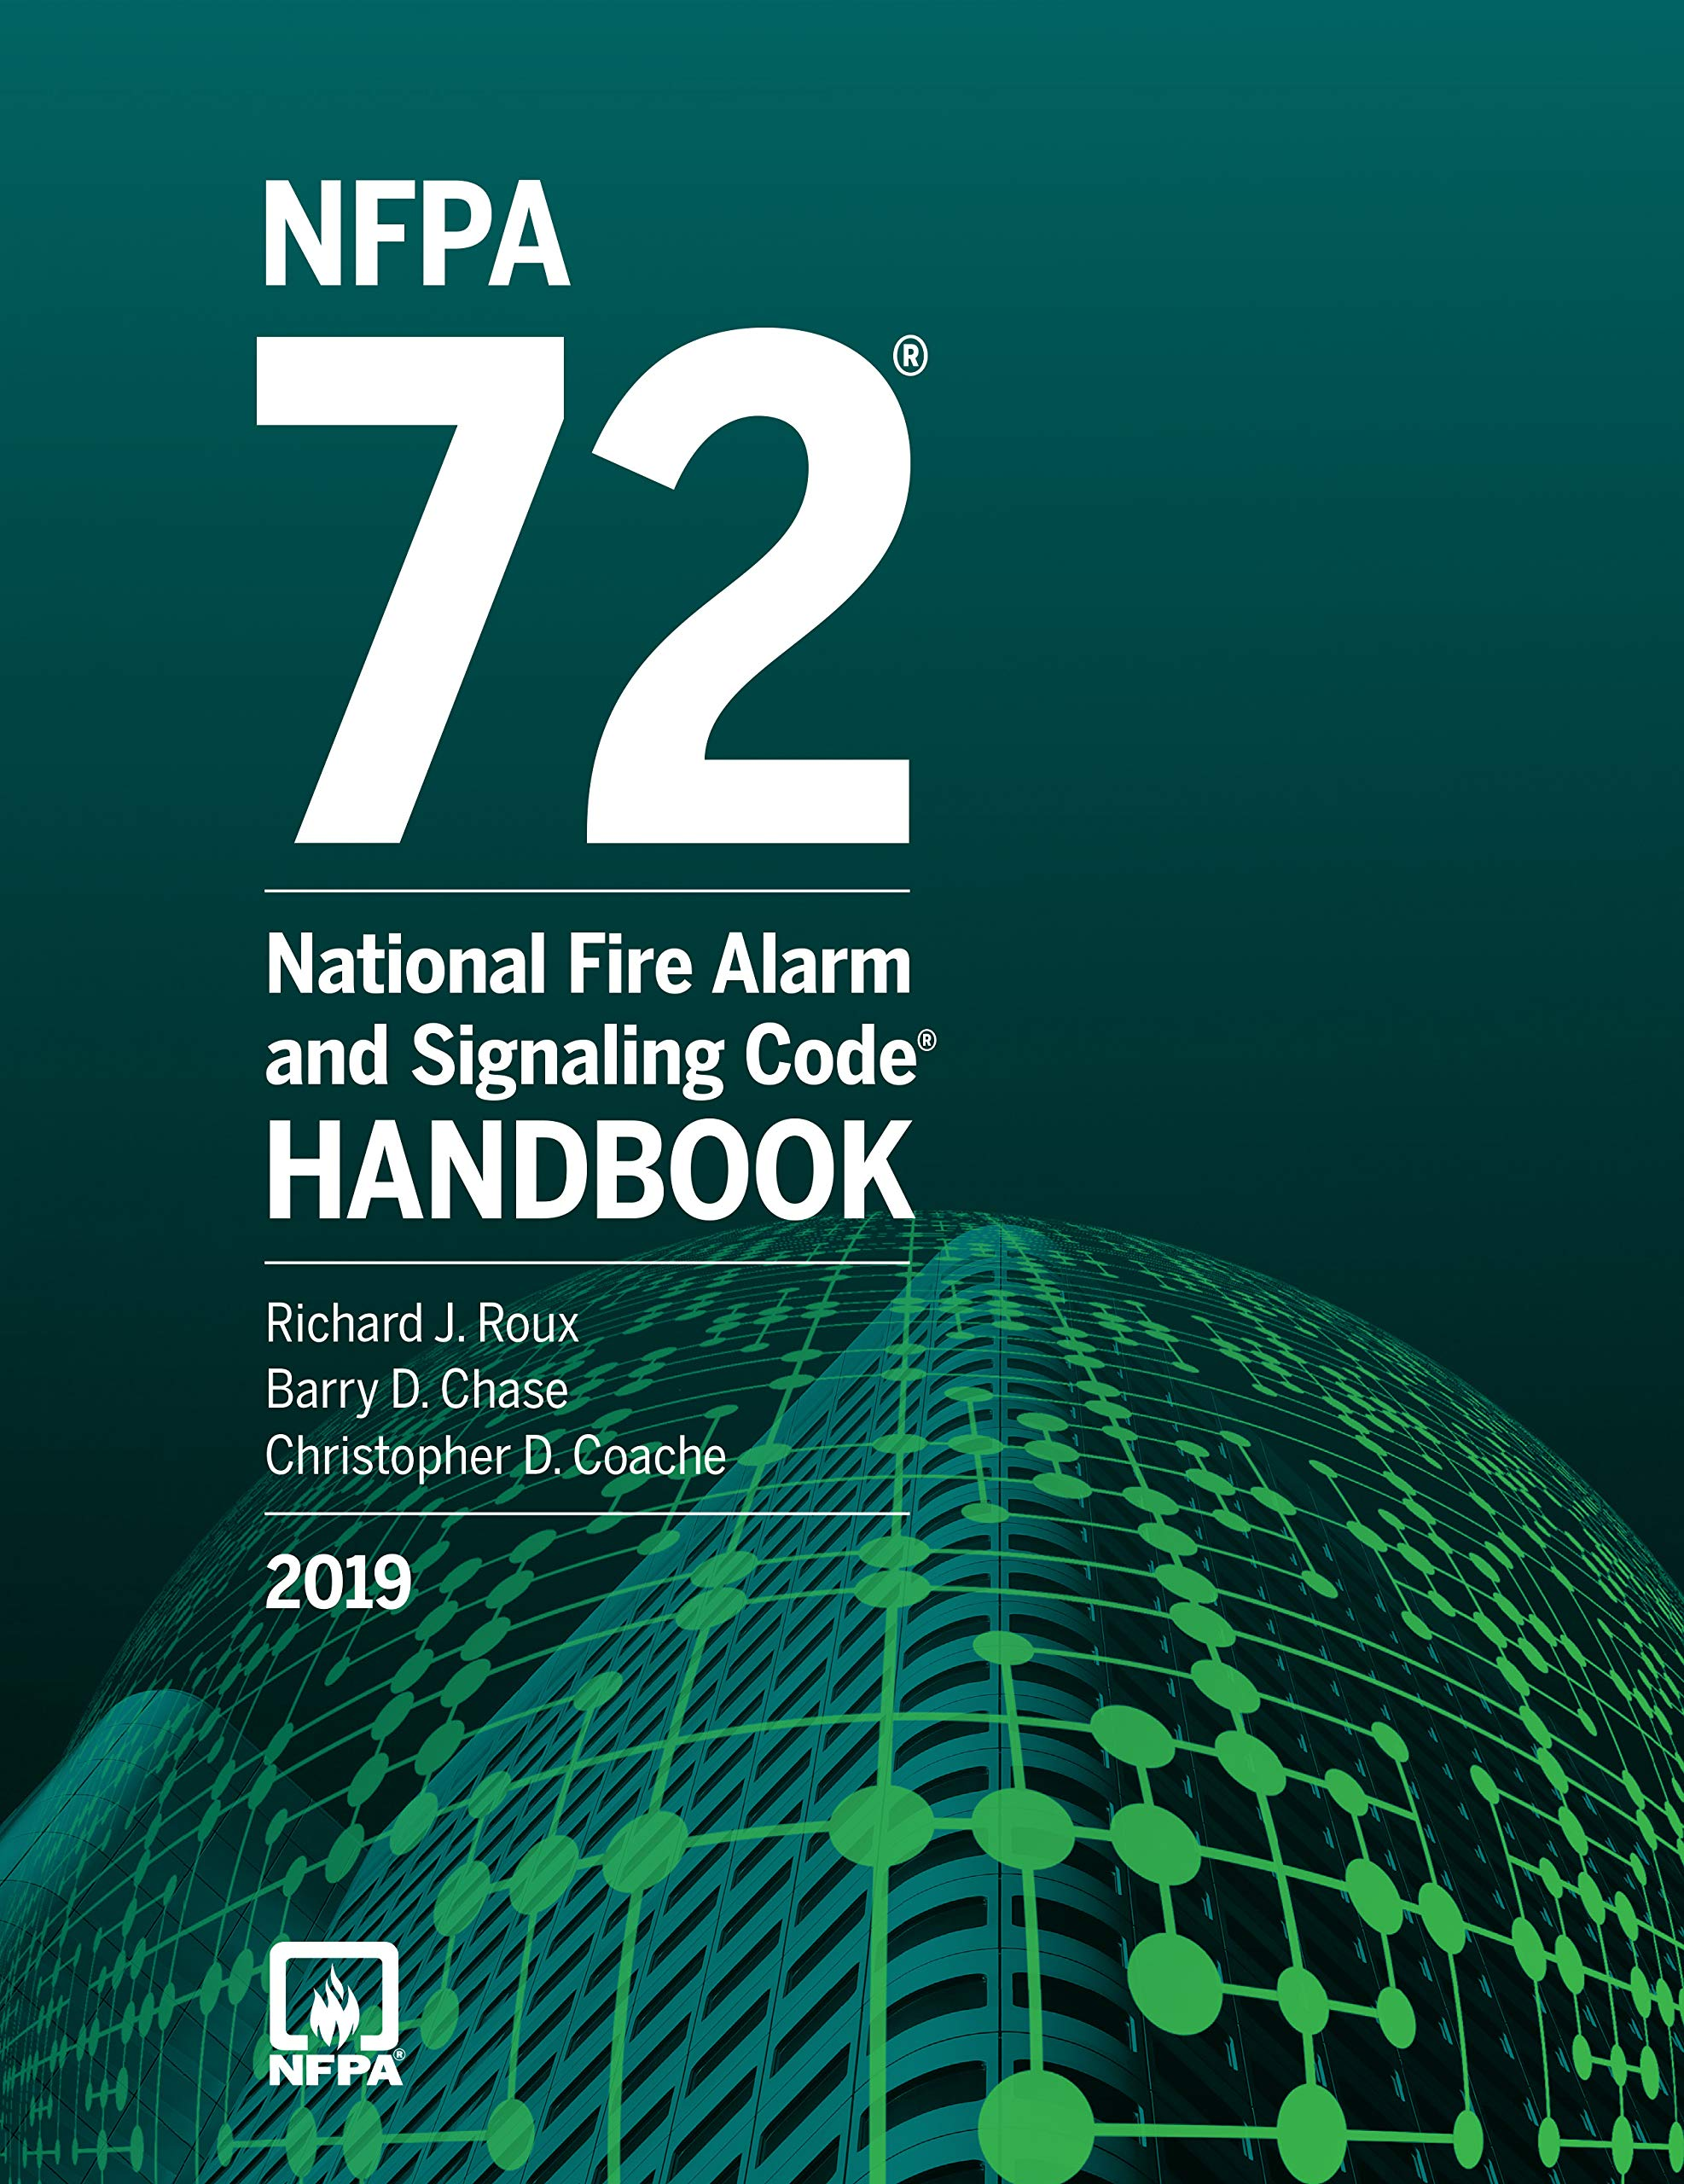 COD NFPA-72 2019 Fire Alarm Code Book NEWSTOCK MAR 2019 *** NON-RETURNABLE ***